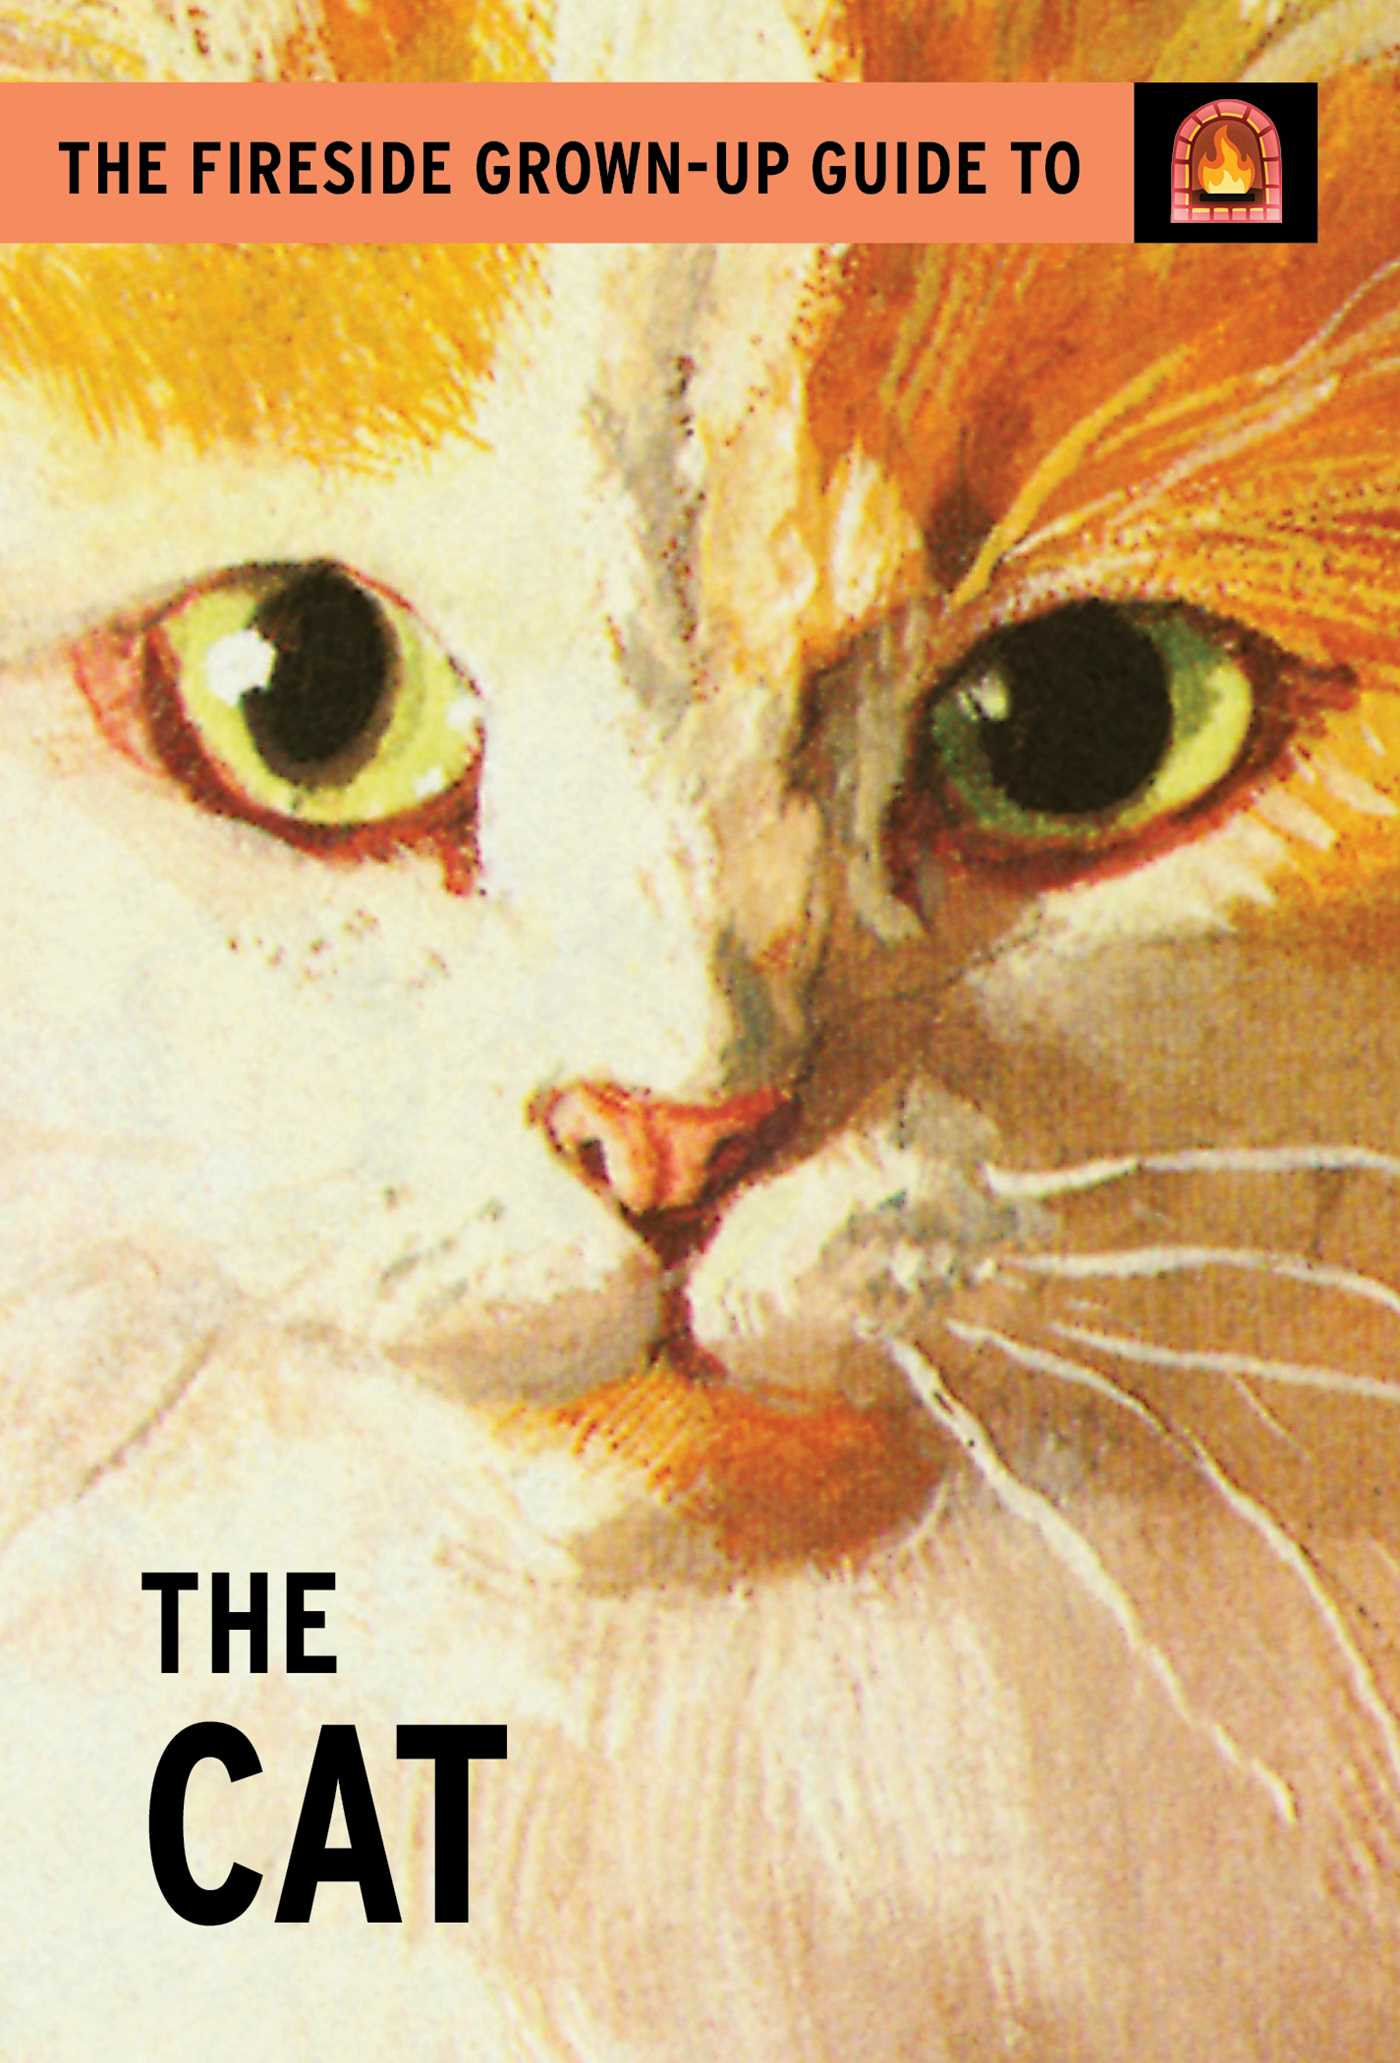 The fireside grown up guide to the cat 9781501152795 hr